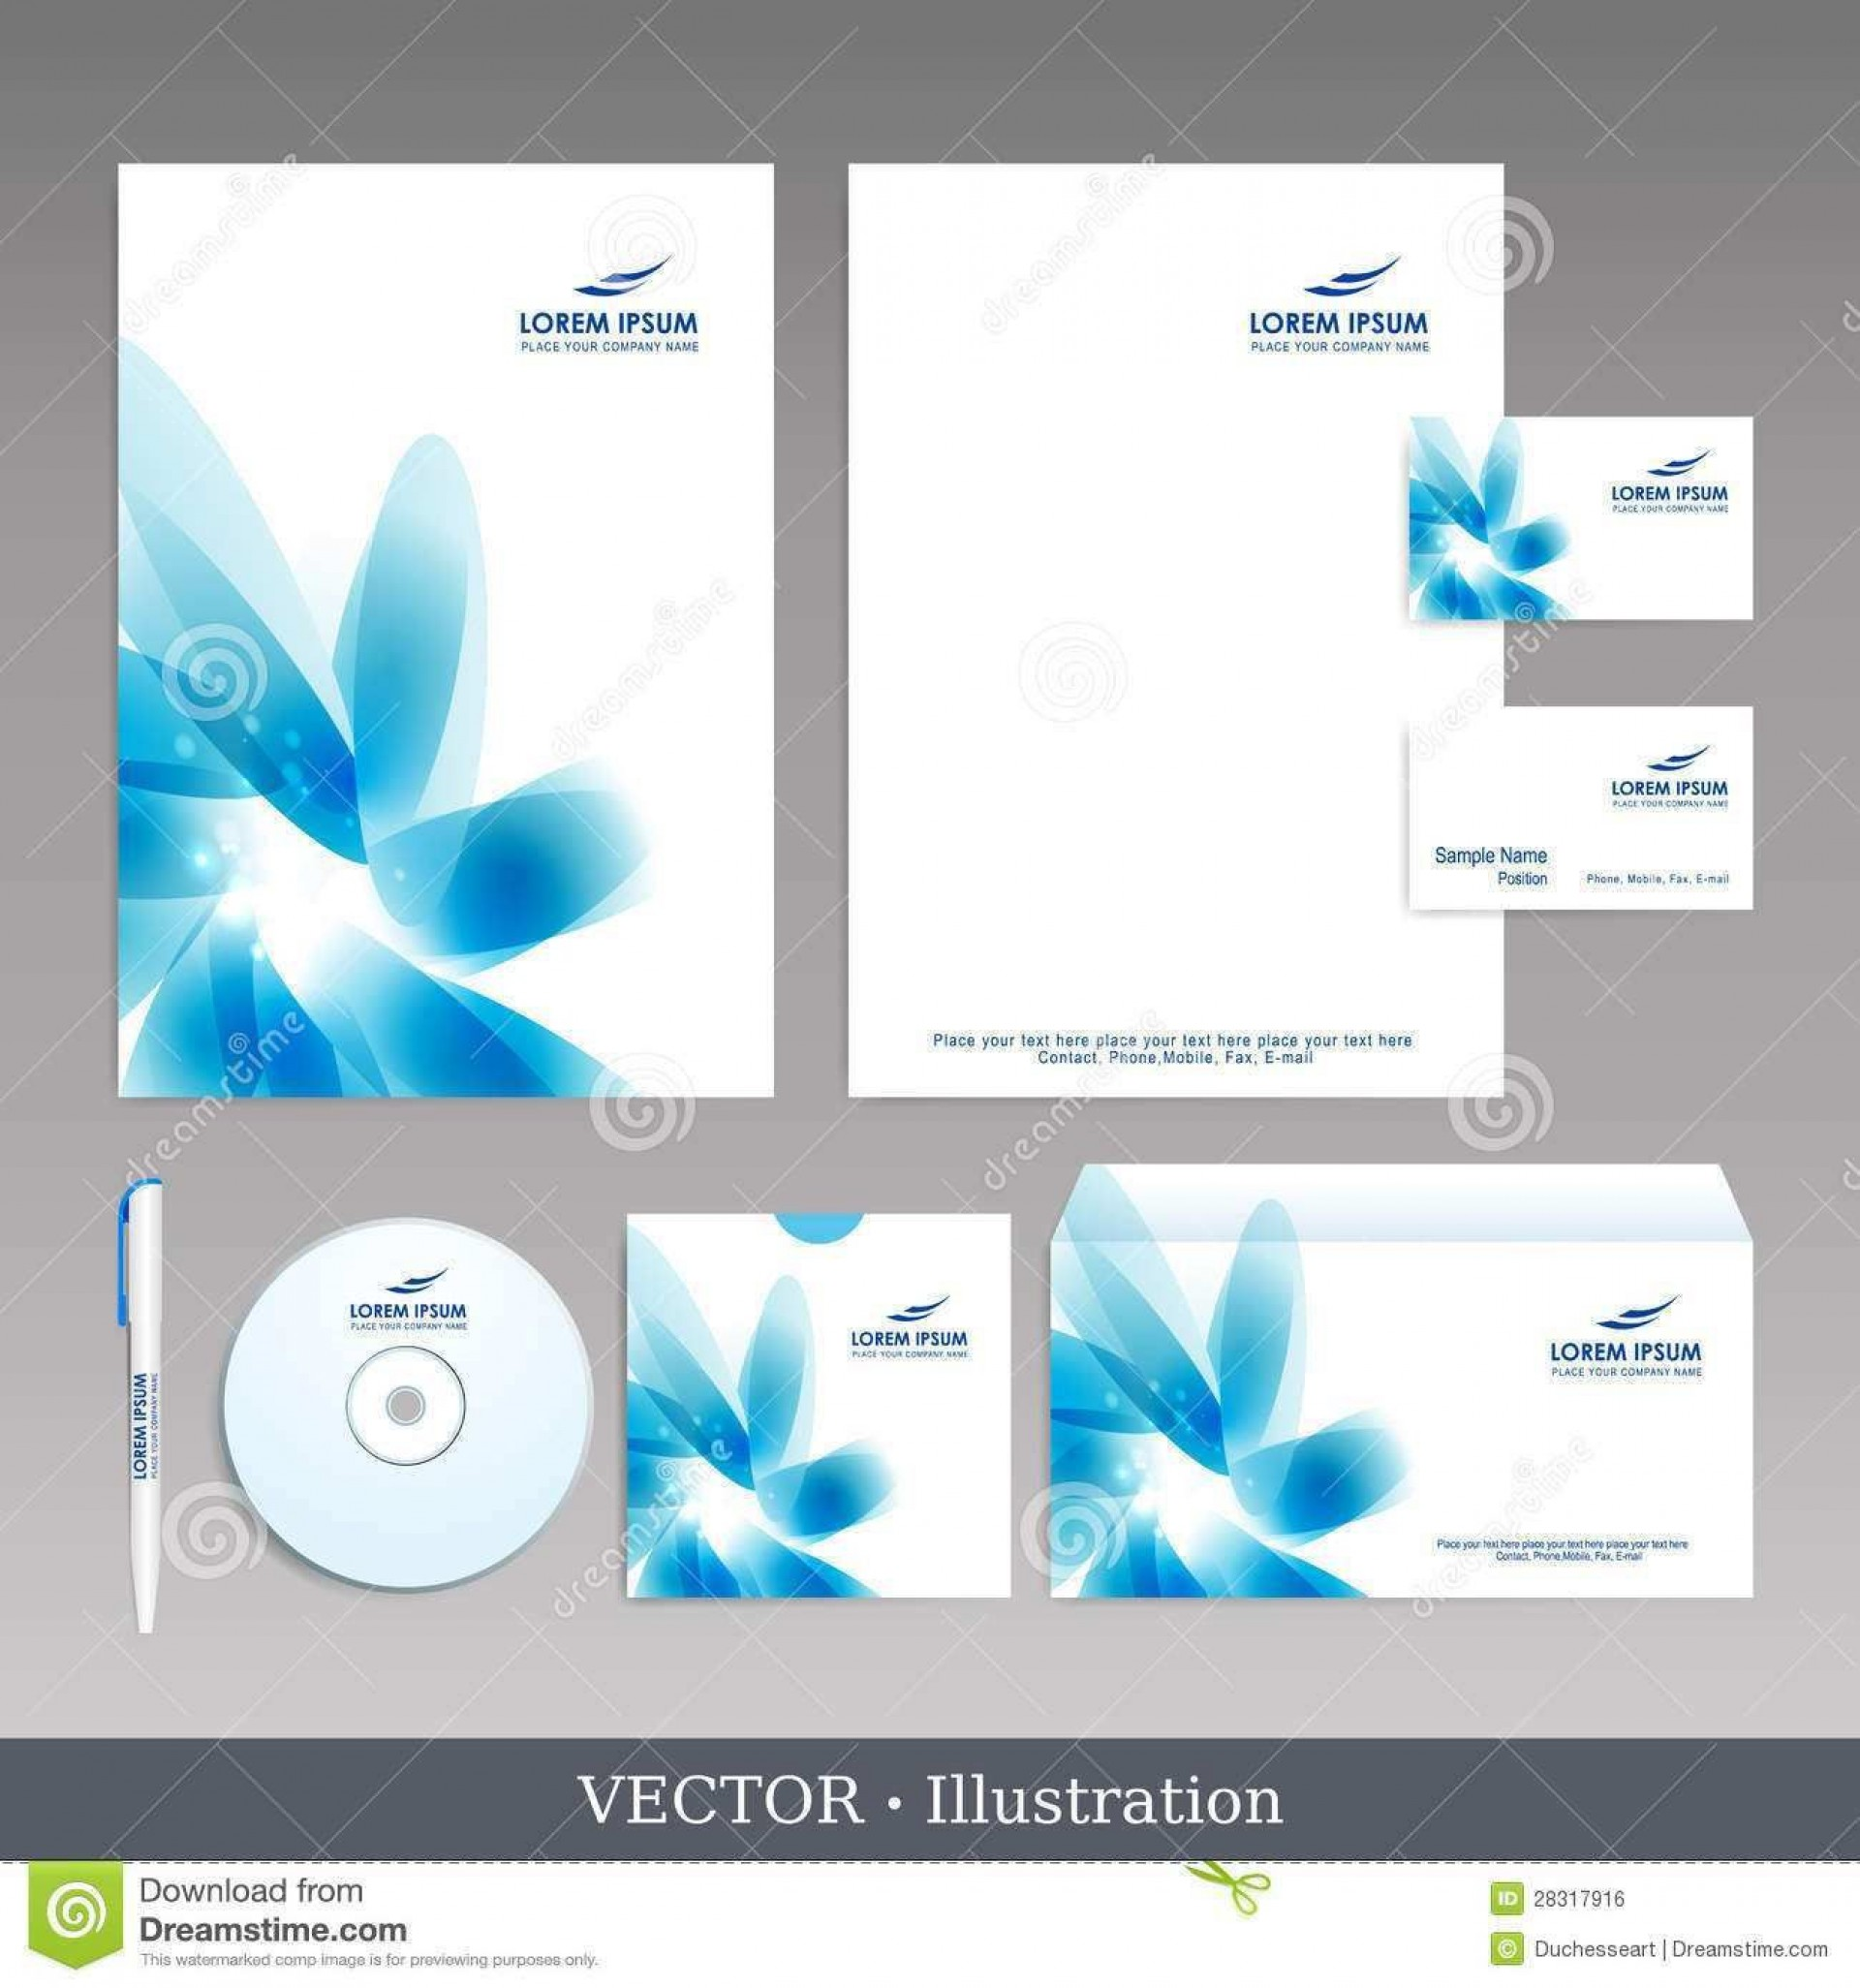 001 Stirring Id Card Template Free Download Photo  Design Photoshop Identity Student Word1920